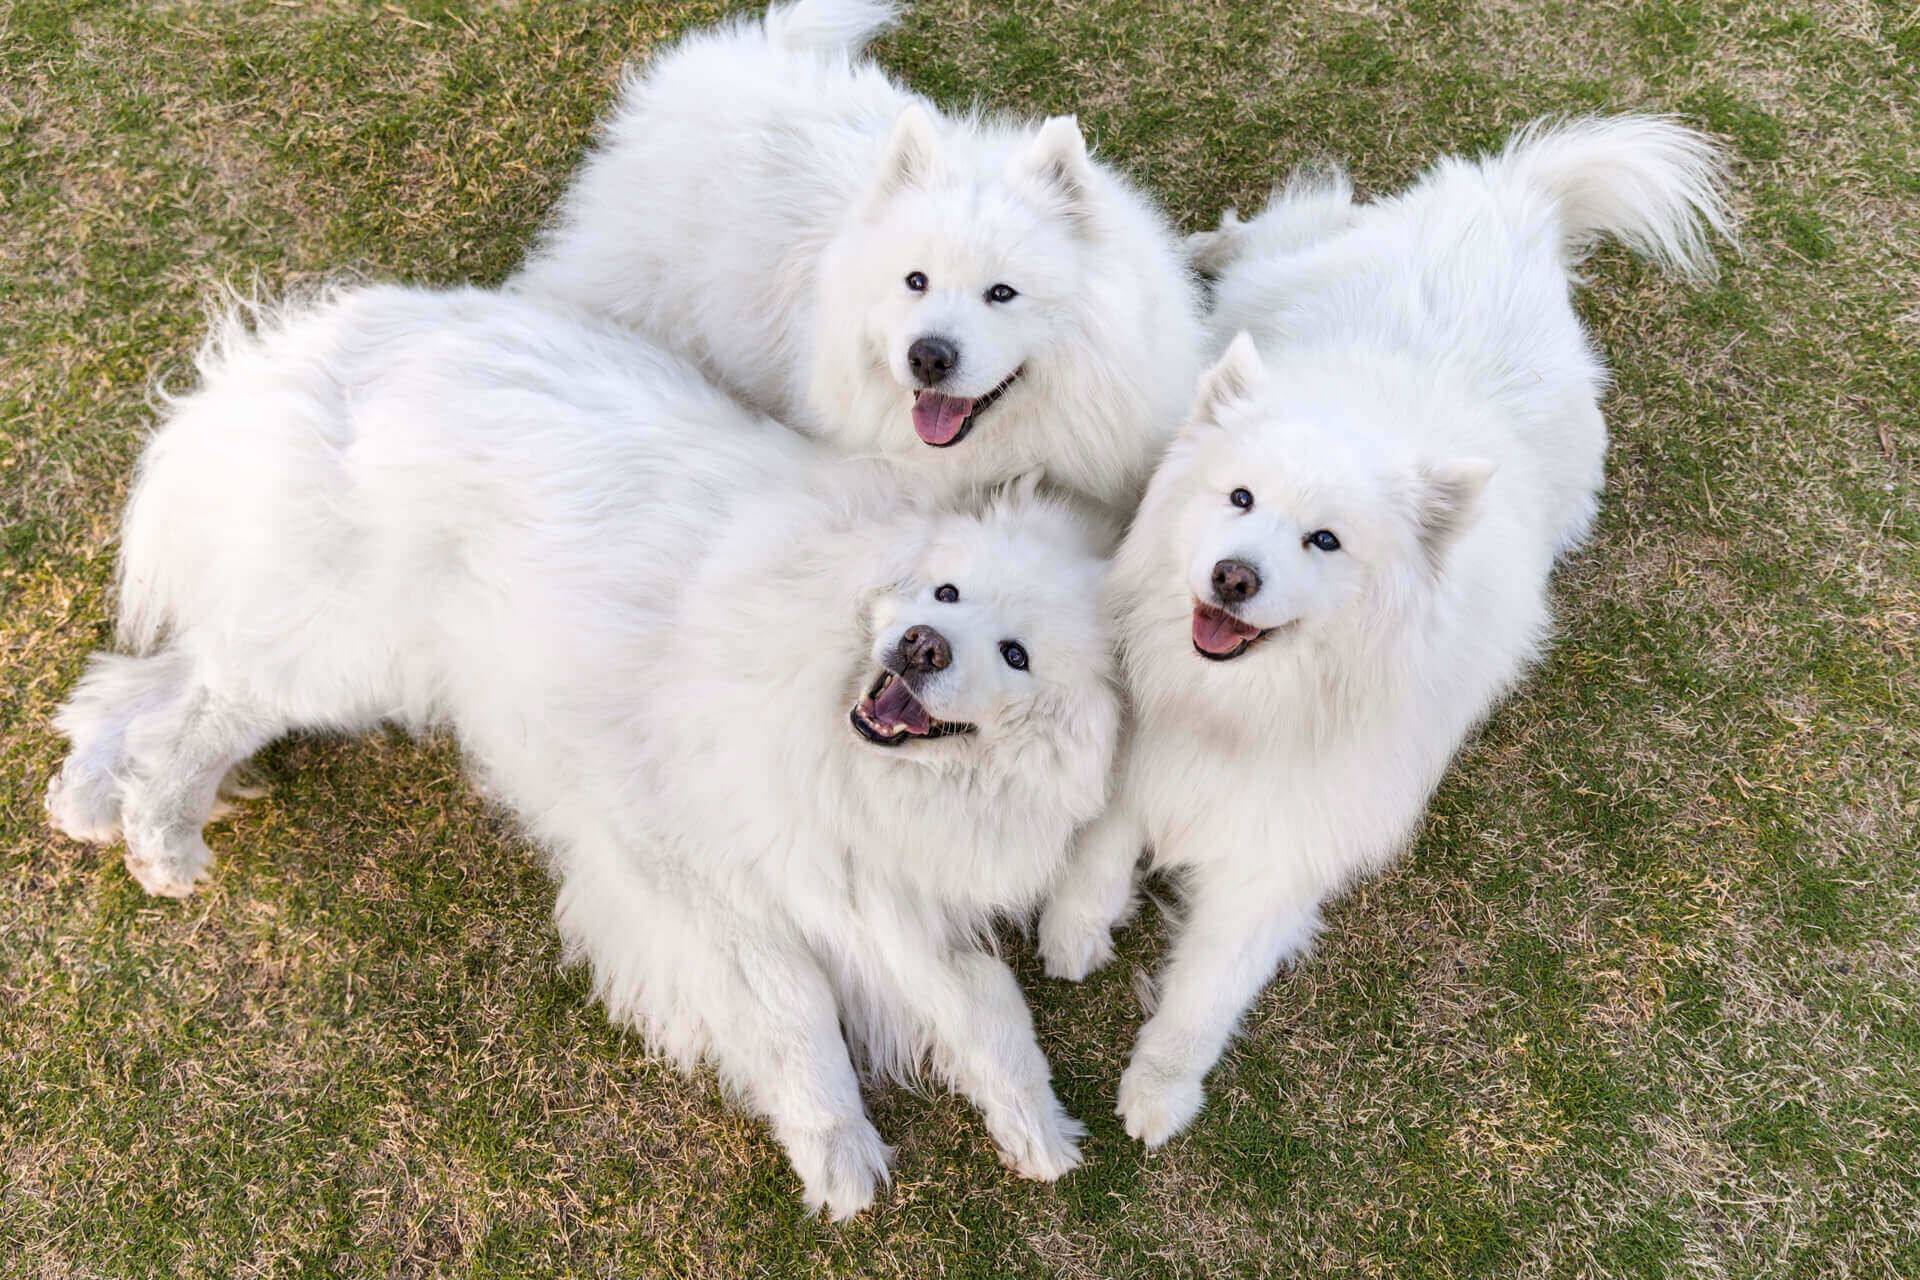 Max, Mia and Mya the Senior Samoyeds